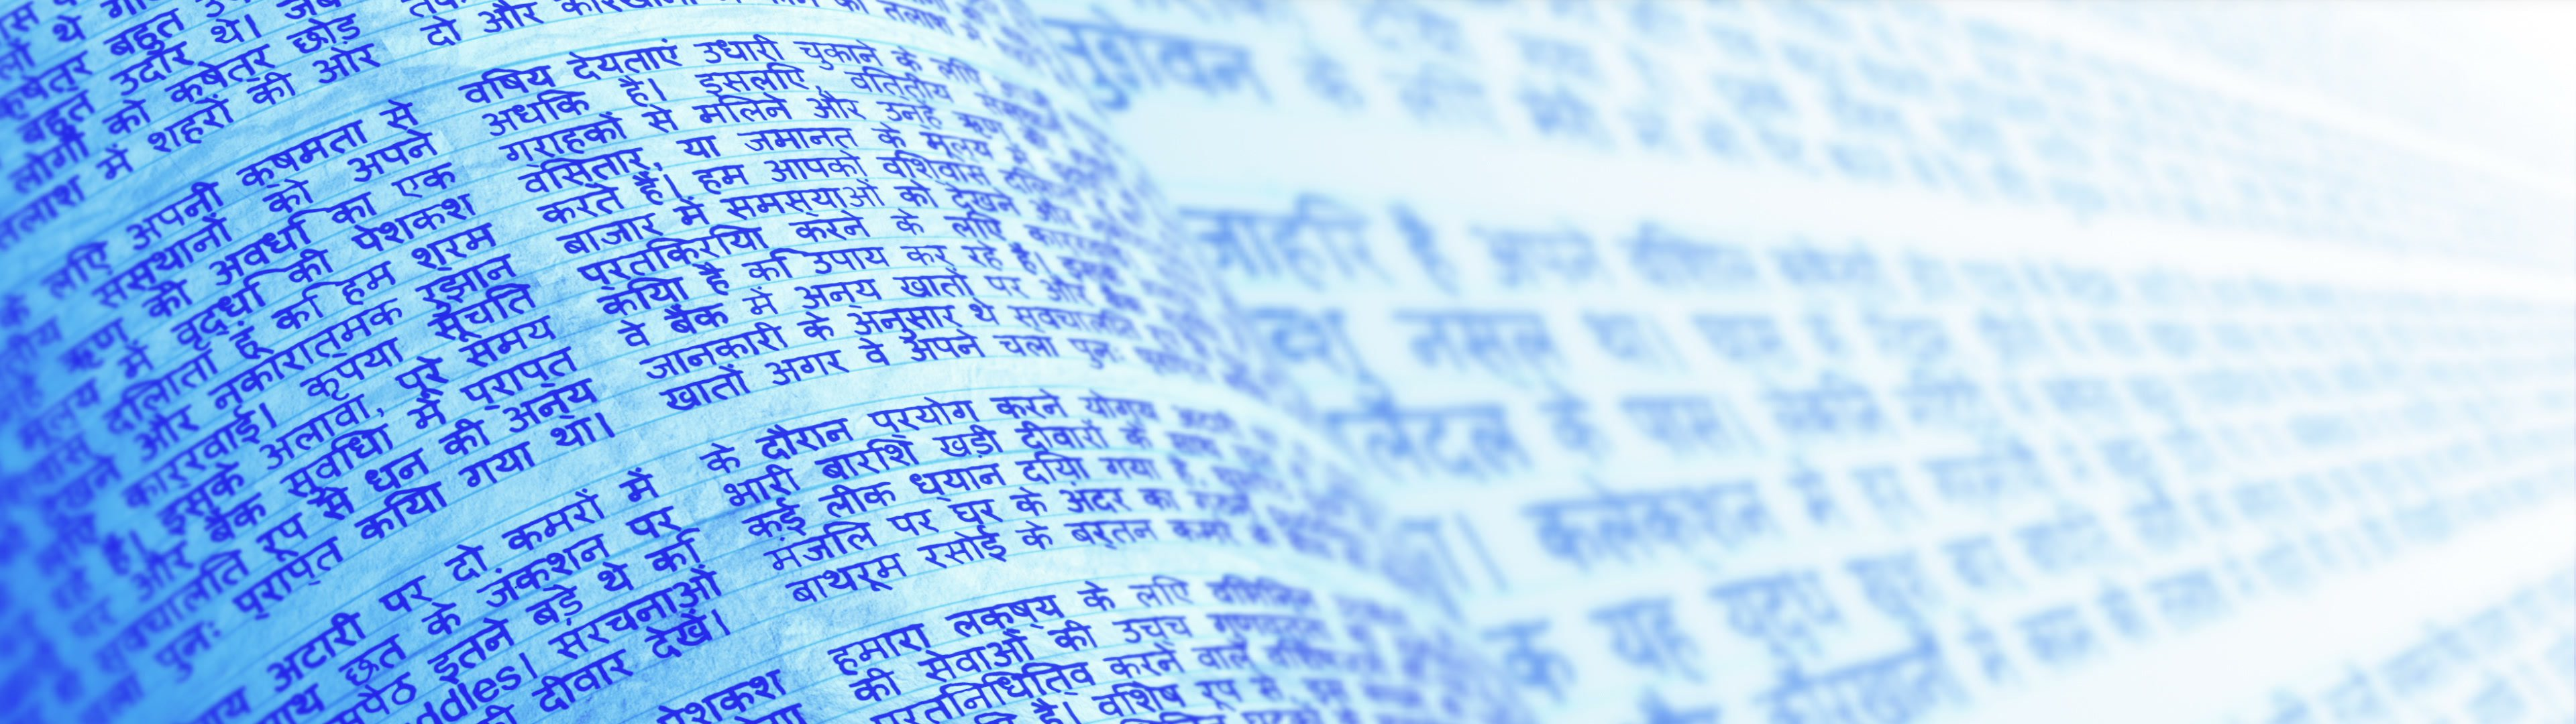 Handwritten letter with undefined text in Hindi. Seamless loop background. | Handwriting. Calligraphy. Manuscript. Script. Random Words in Hindi. Seamless loop. Old handwriting. Hastily scrawled handwriting. Abstract texture background loop with copy space. Calligraphic handwritten script in Devanagari alphabet. - ID:24253